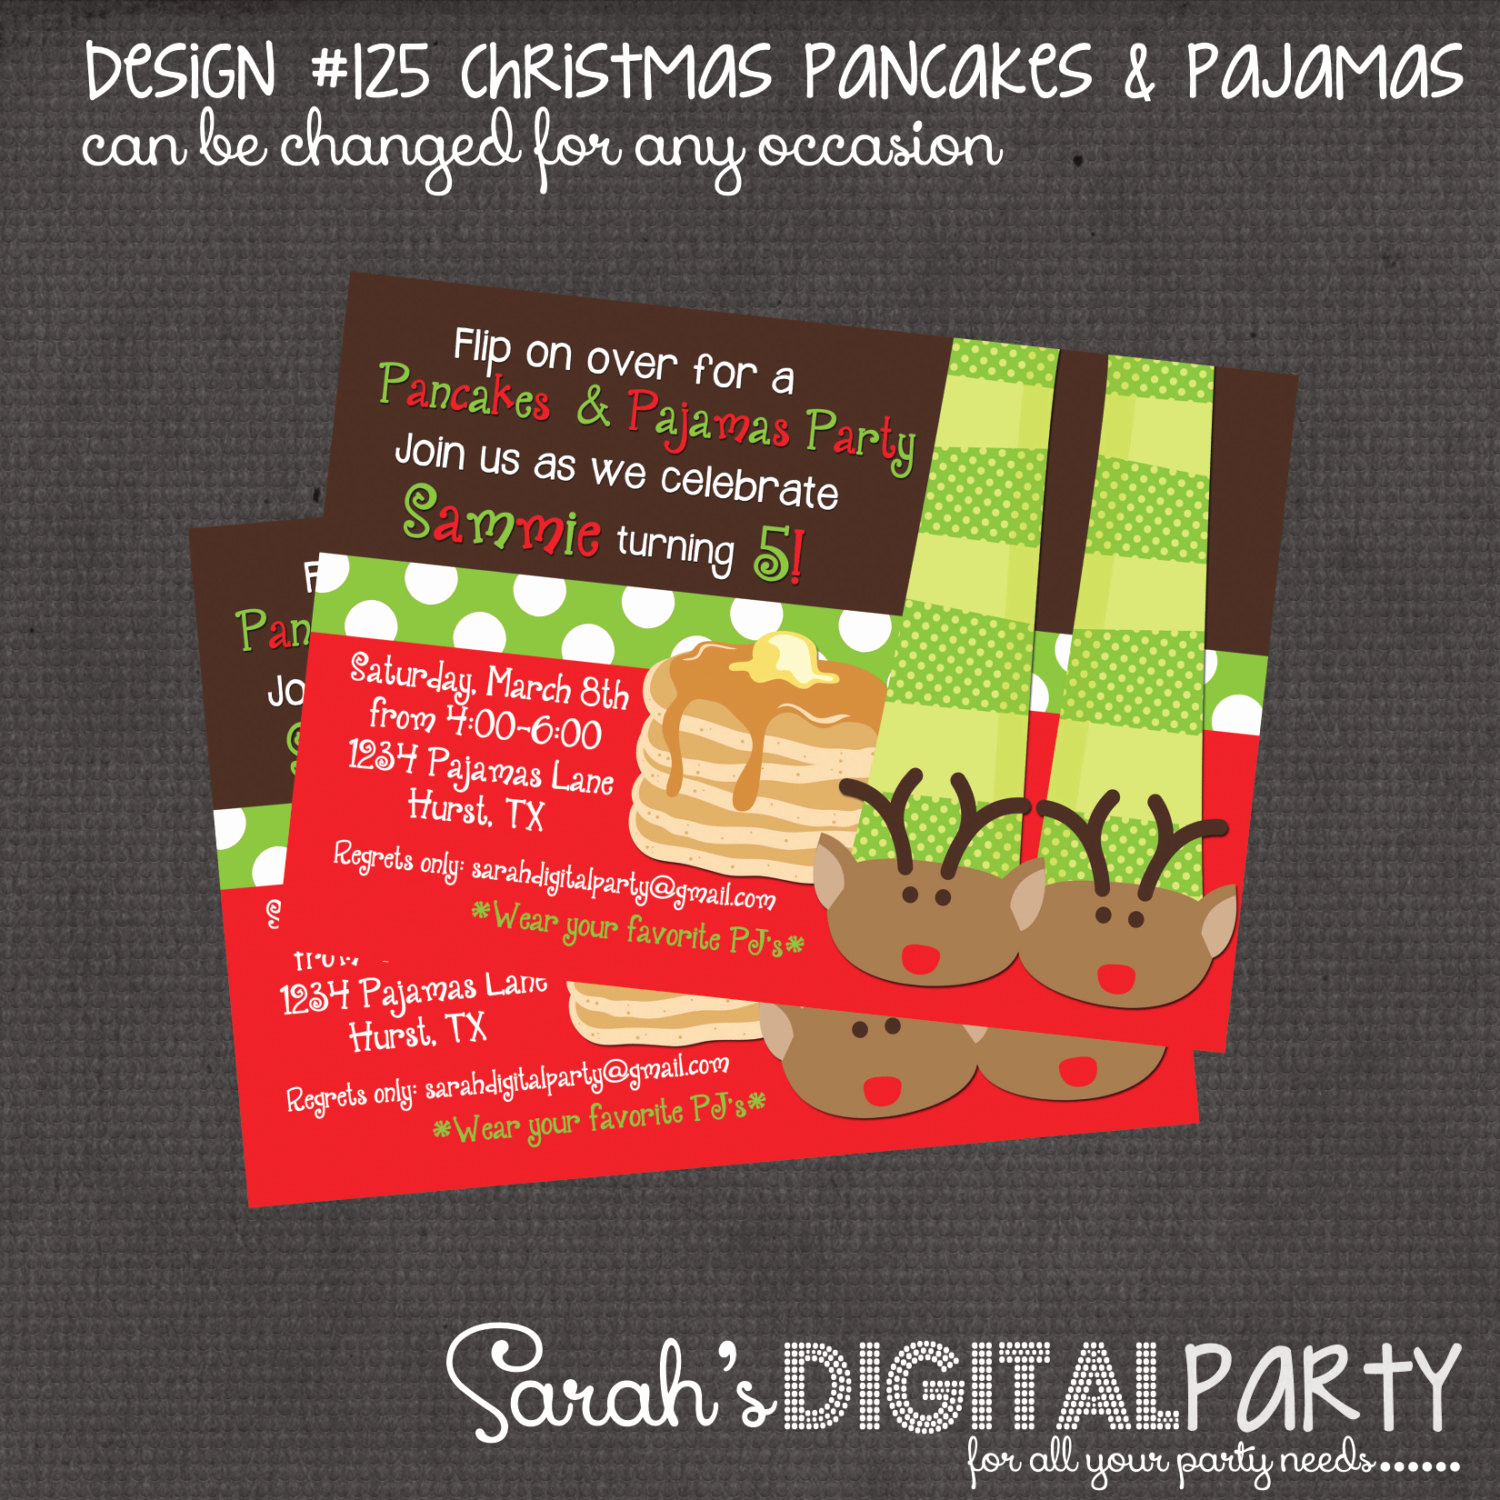 Pancakes and Pajamas Invitation Best Of Christmas Pancakes and Pajama Party Invitation 4x6 or 5x7